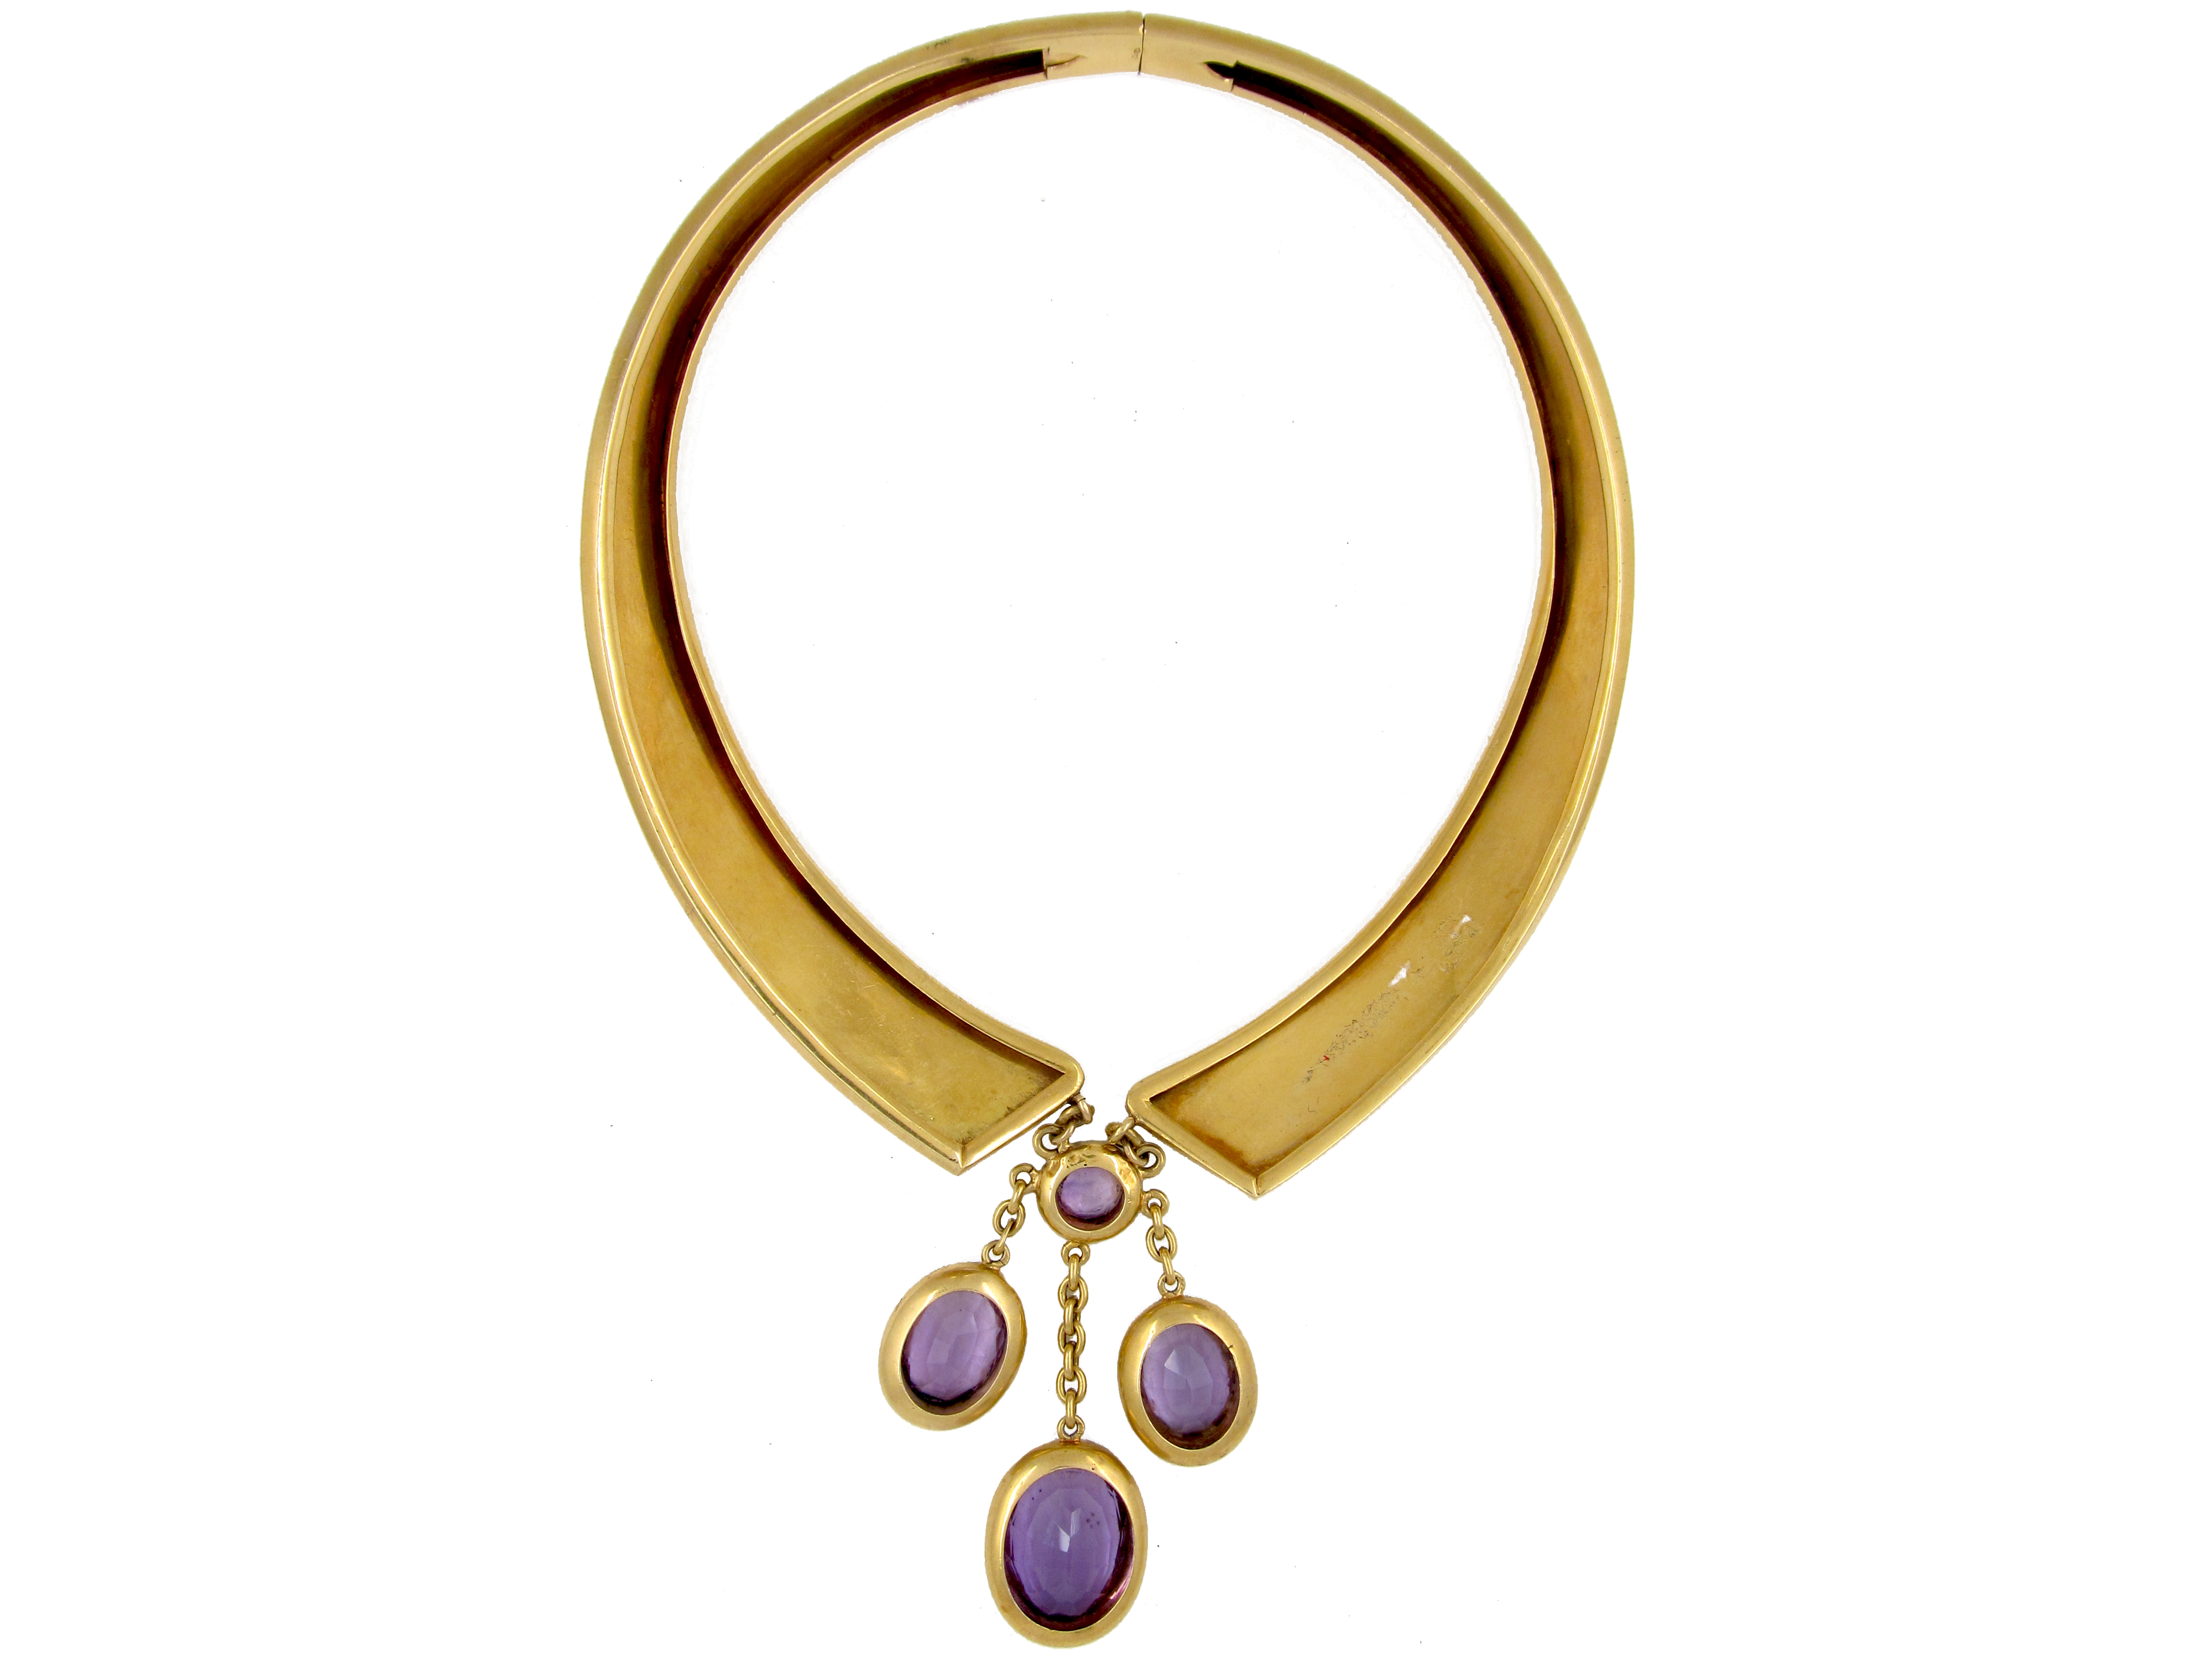 18ct Gold French Collar with Amethyst Drops